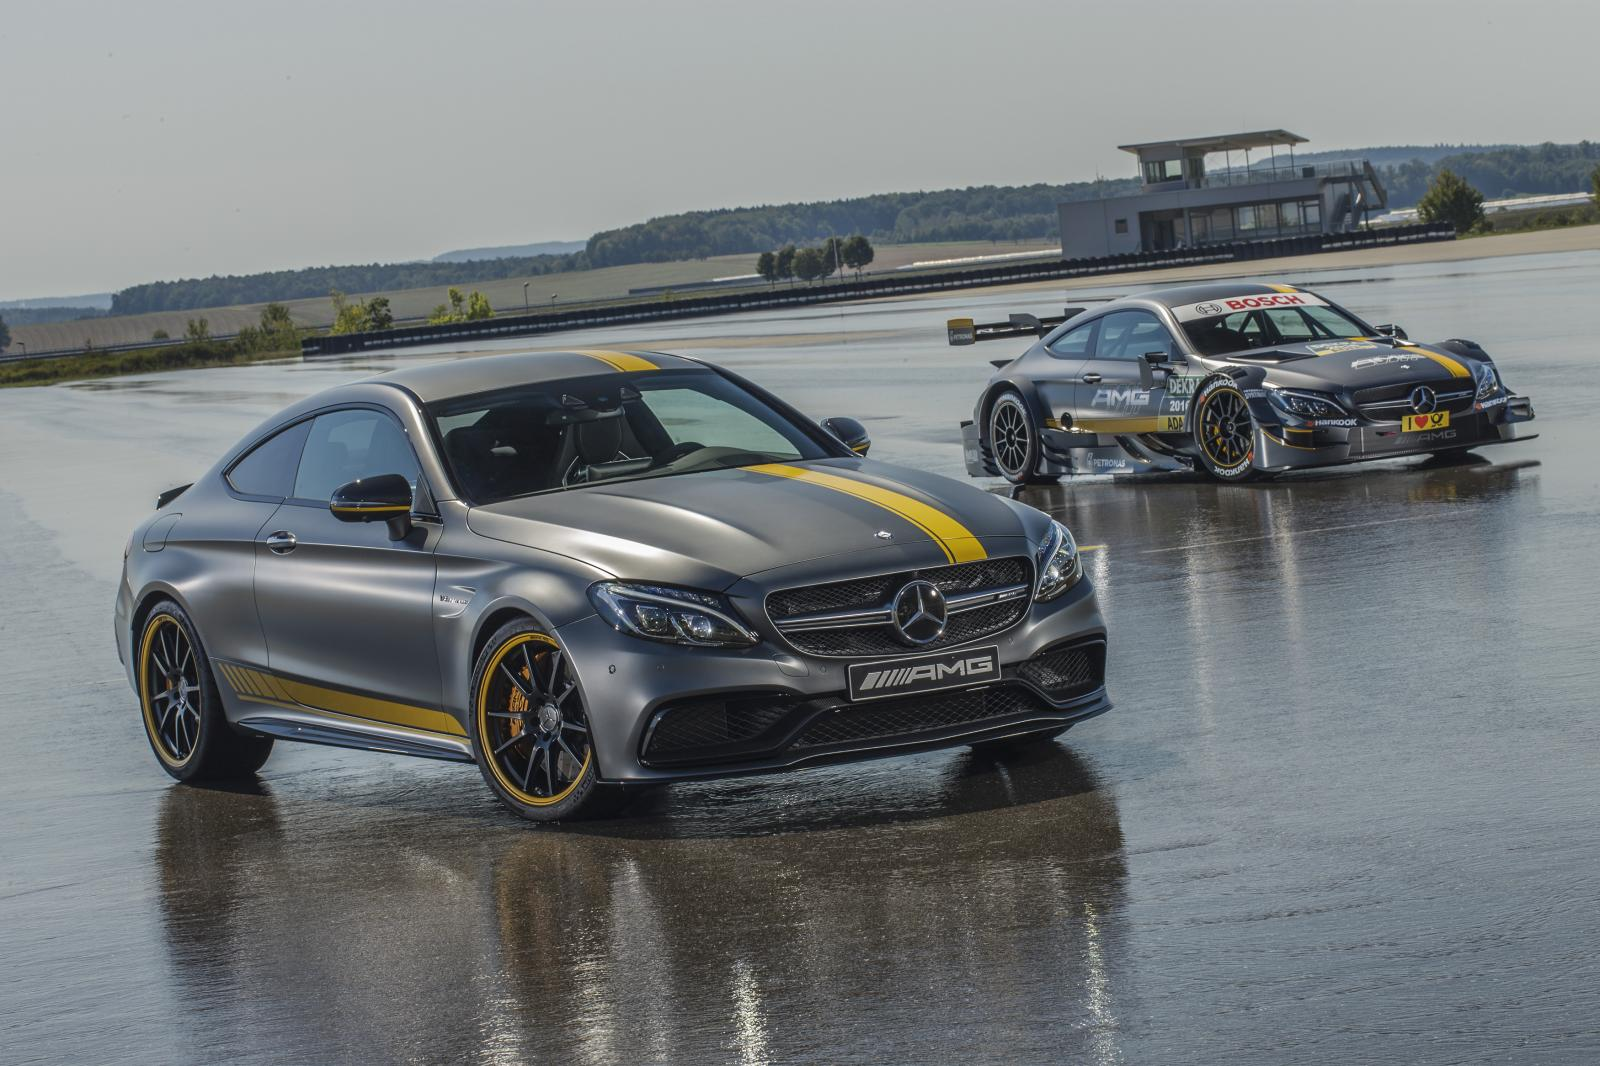 Mercedes-AMG-C-63-Coupe-Edition 1-2015-8